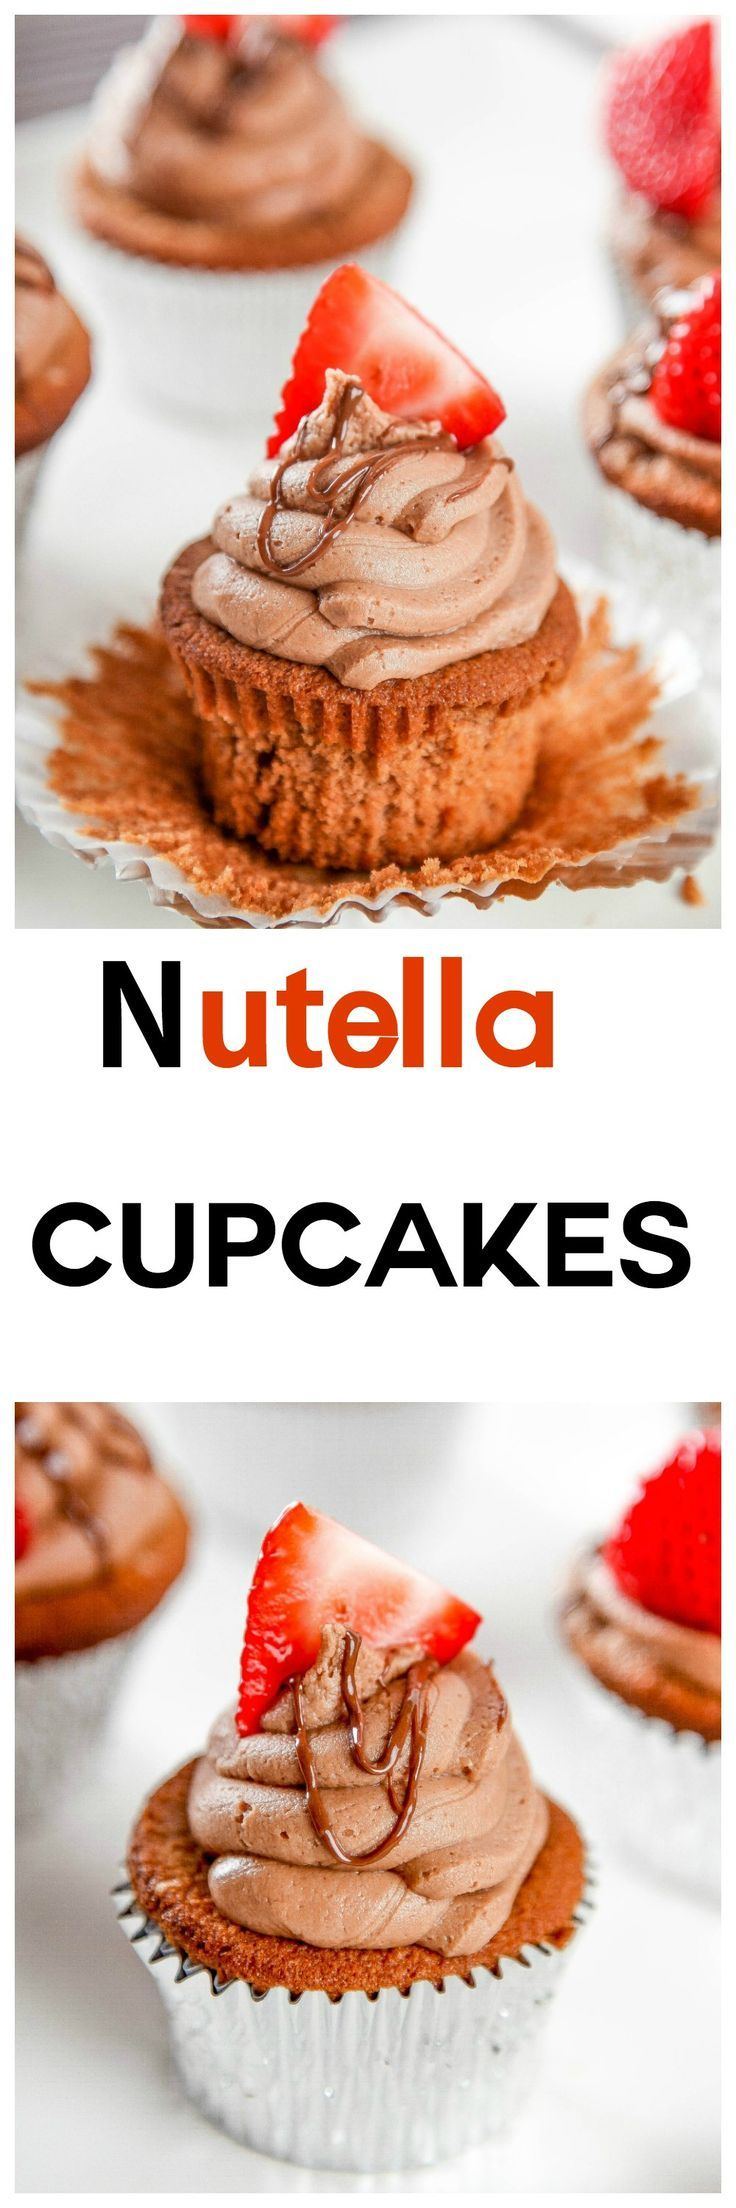 Easy Nutella Cupcakes with Nutella Buttercream: Rich chocolate cupcakes topped a creamy dreamy Nutella buttercream. If you like Nutella you'll love these cupcakes!